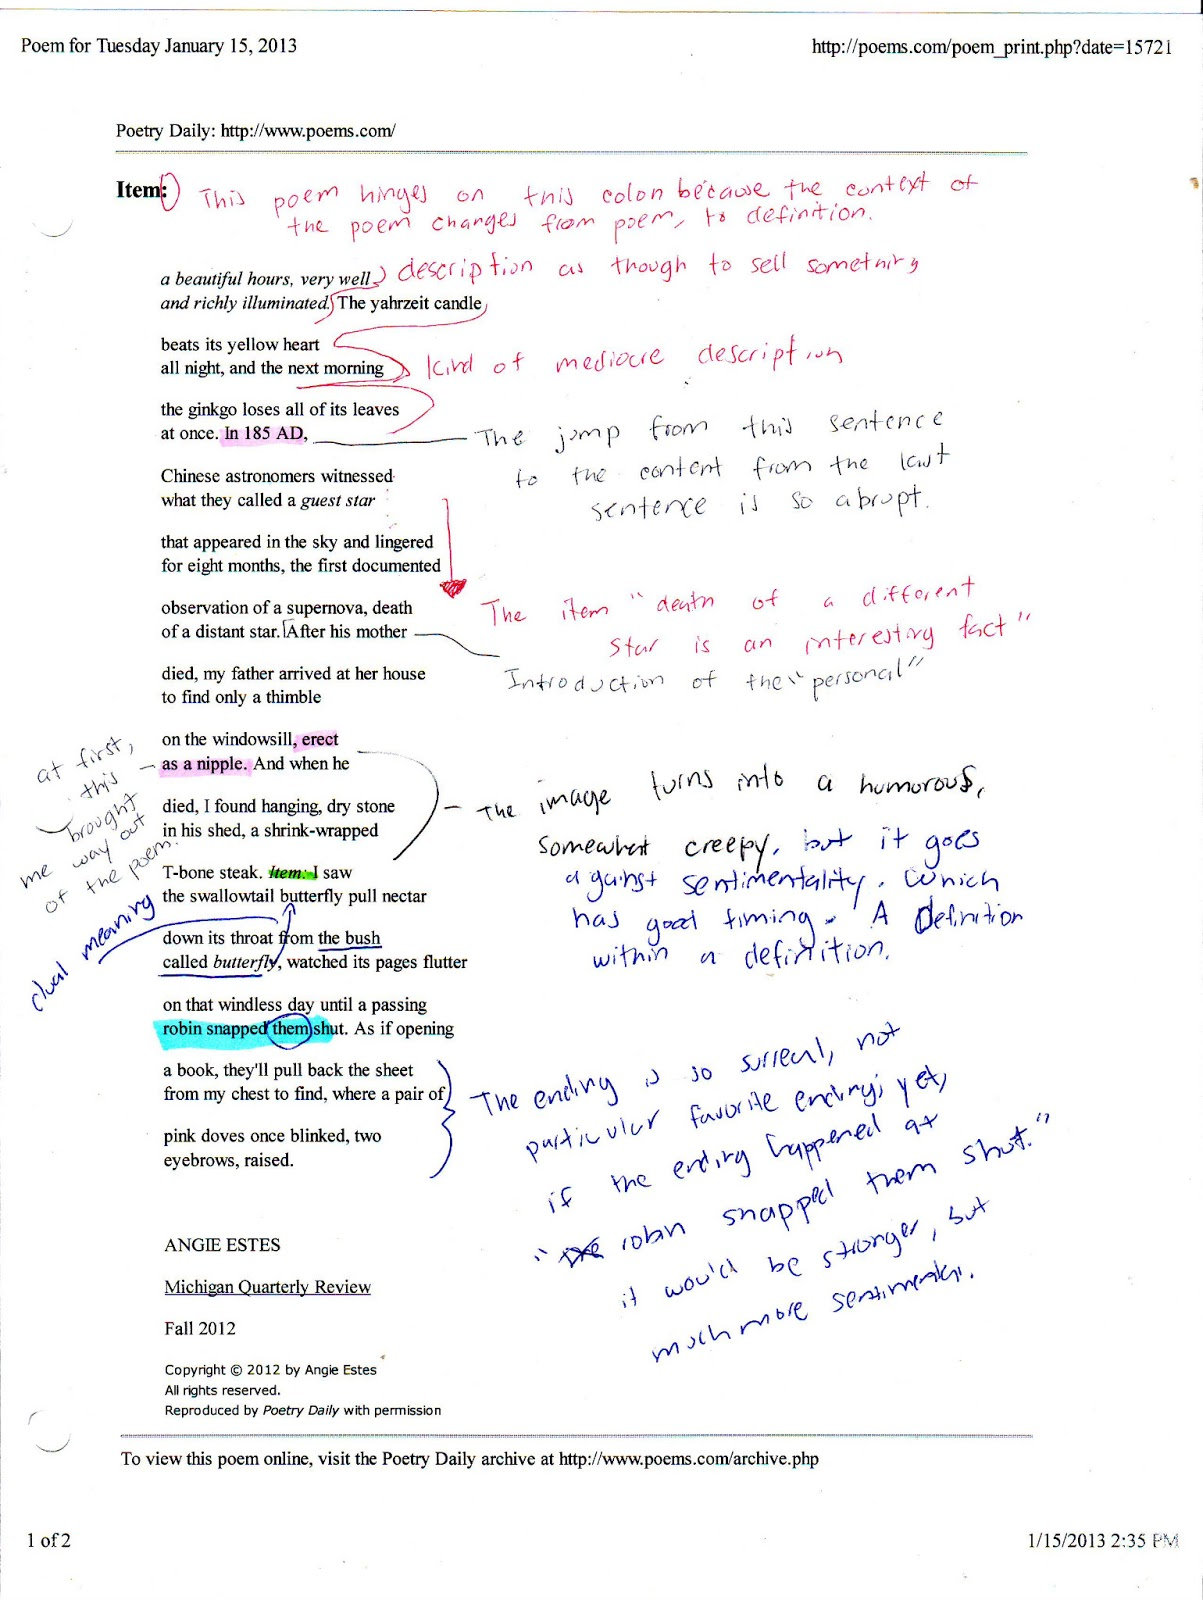 023 Essay Example Image70131 Jpg How To Quote Poem In Best A An Lines From Mla Chicago Style Full